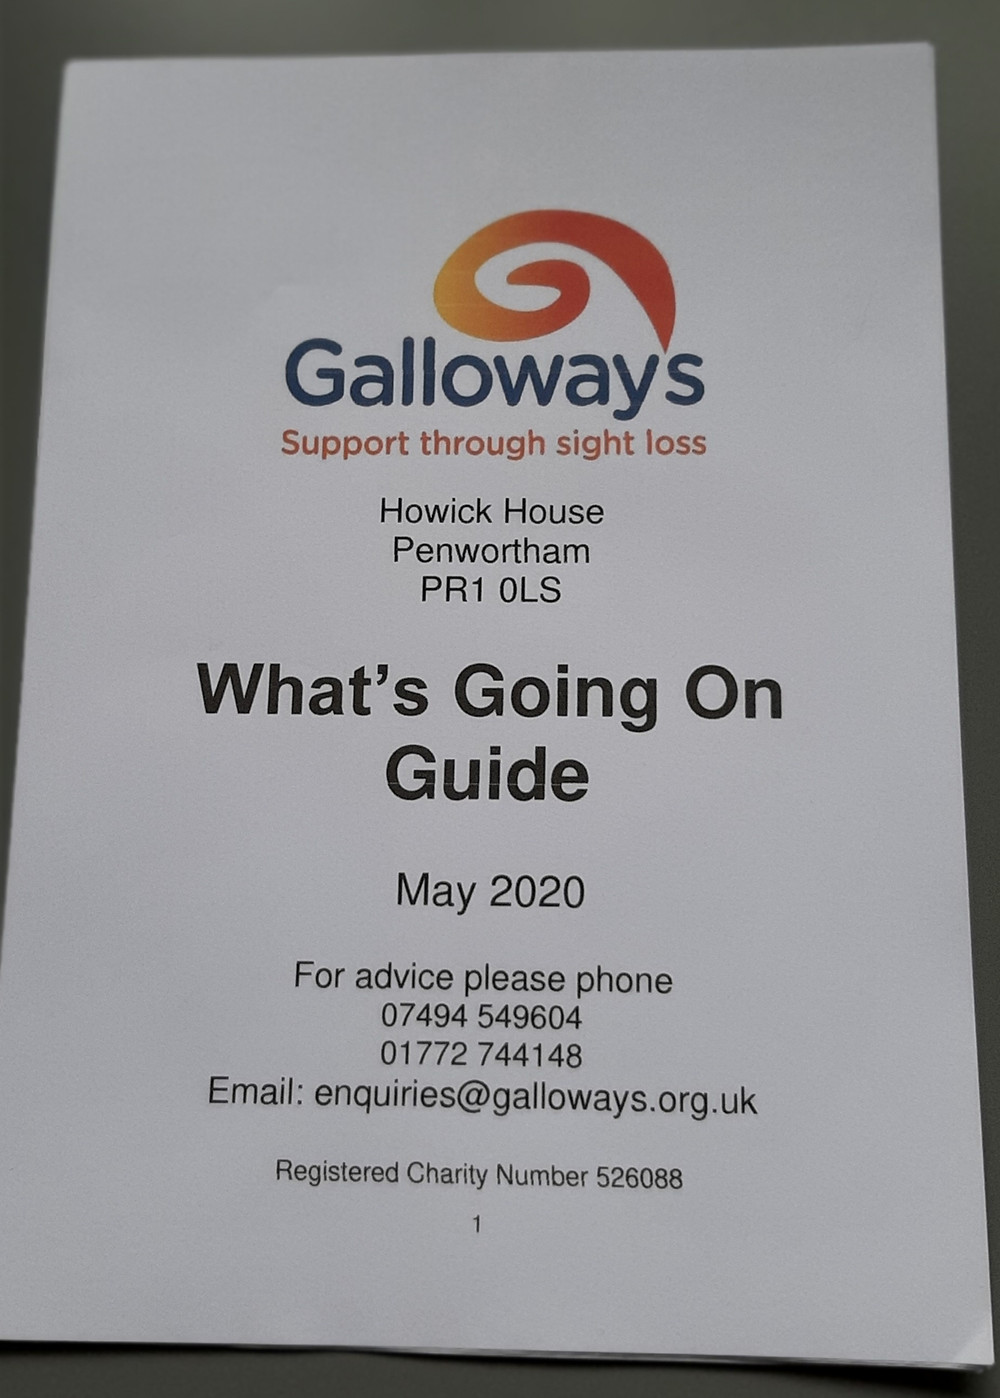 Image shows the printed What's Going On Guide